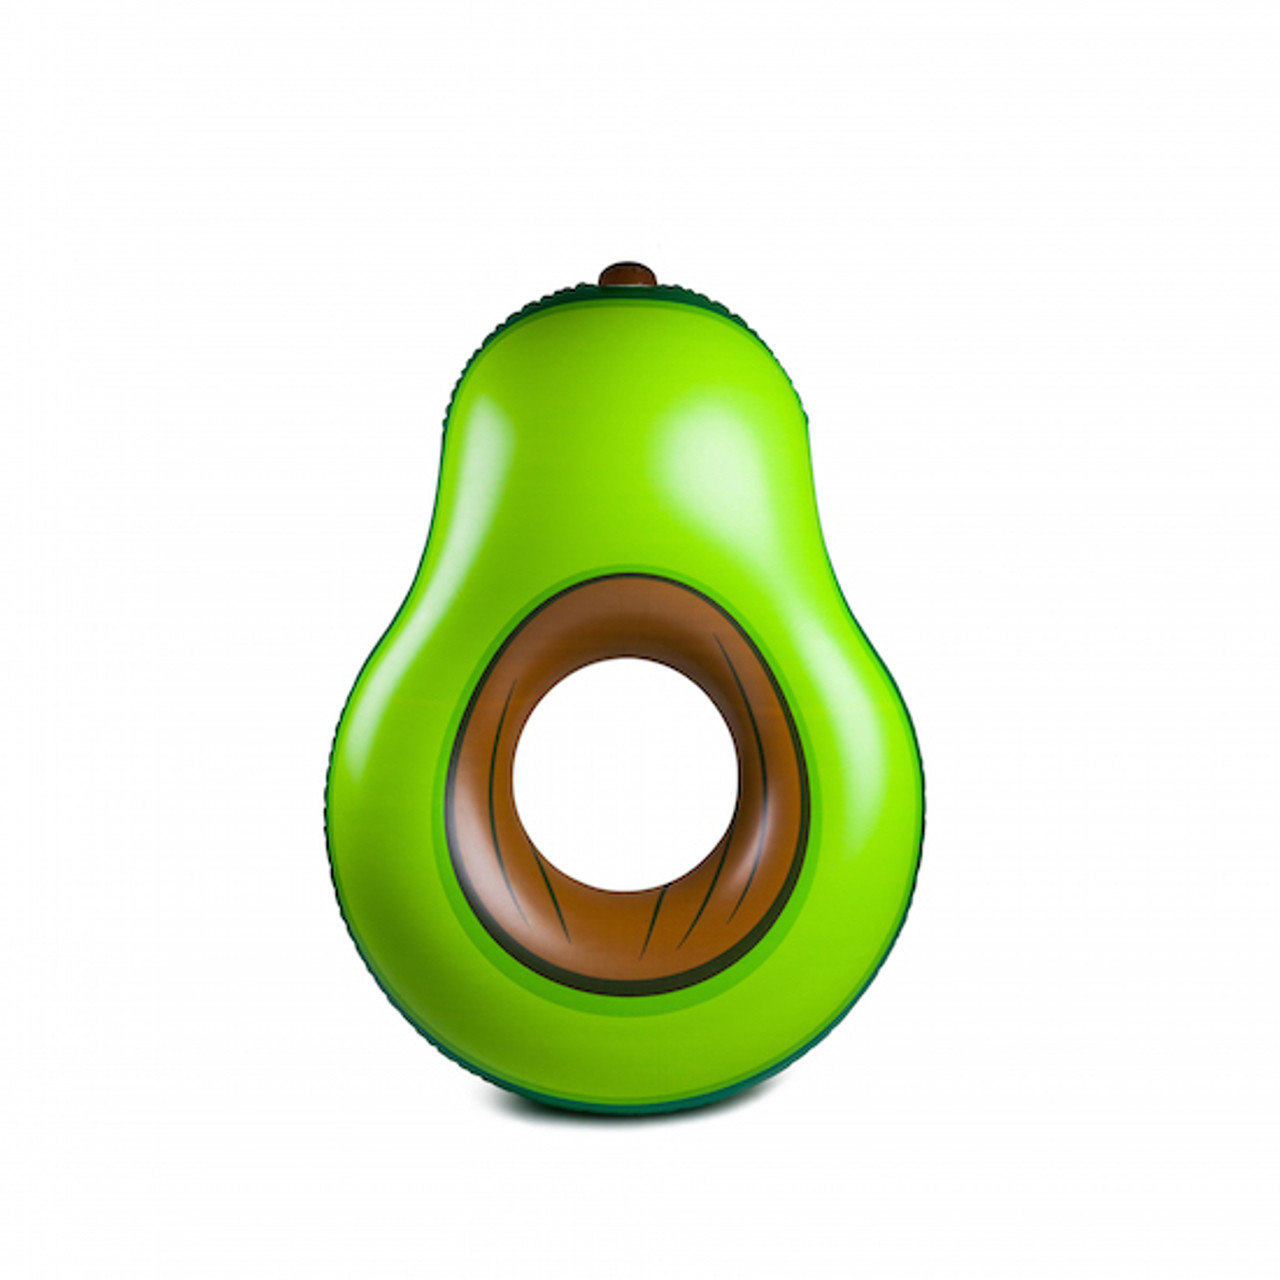 giant-gigantic-avocado-pool-party-inflatable-float-supplies-nightclub-shop-outdoors-2